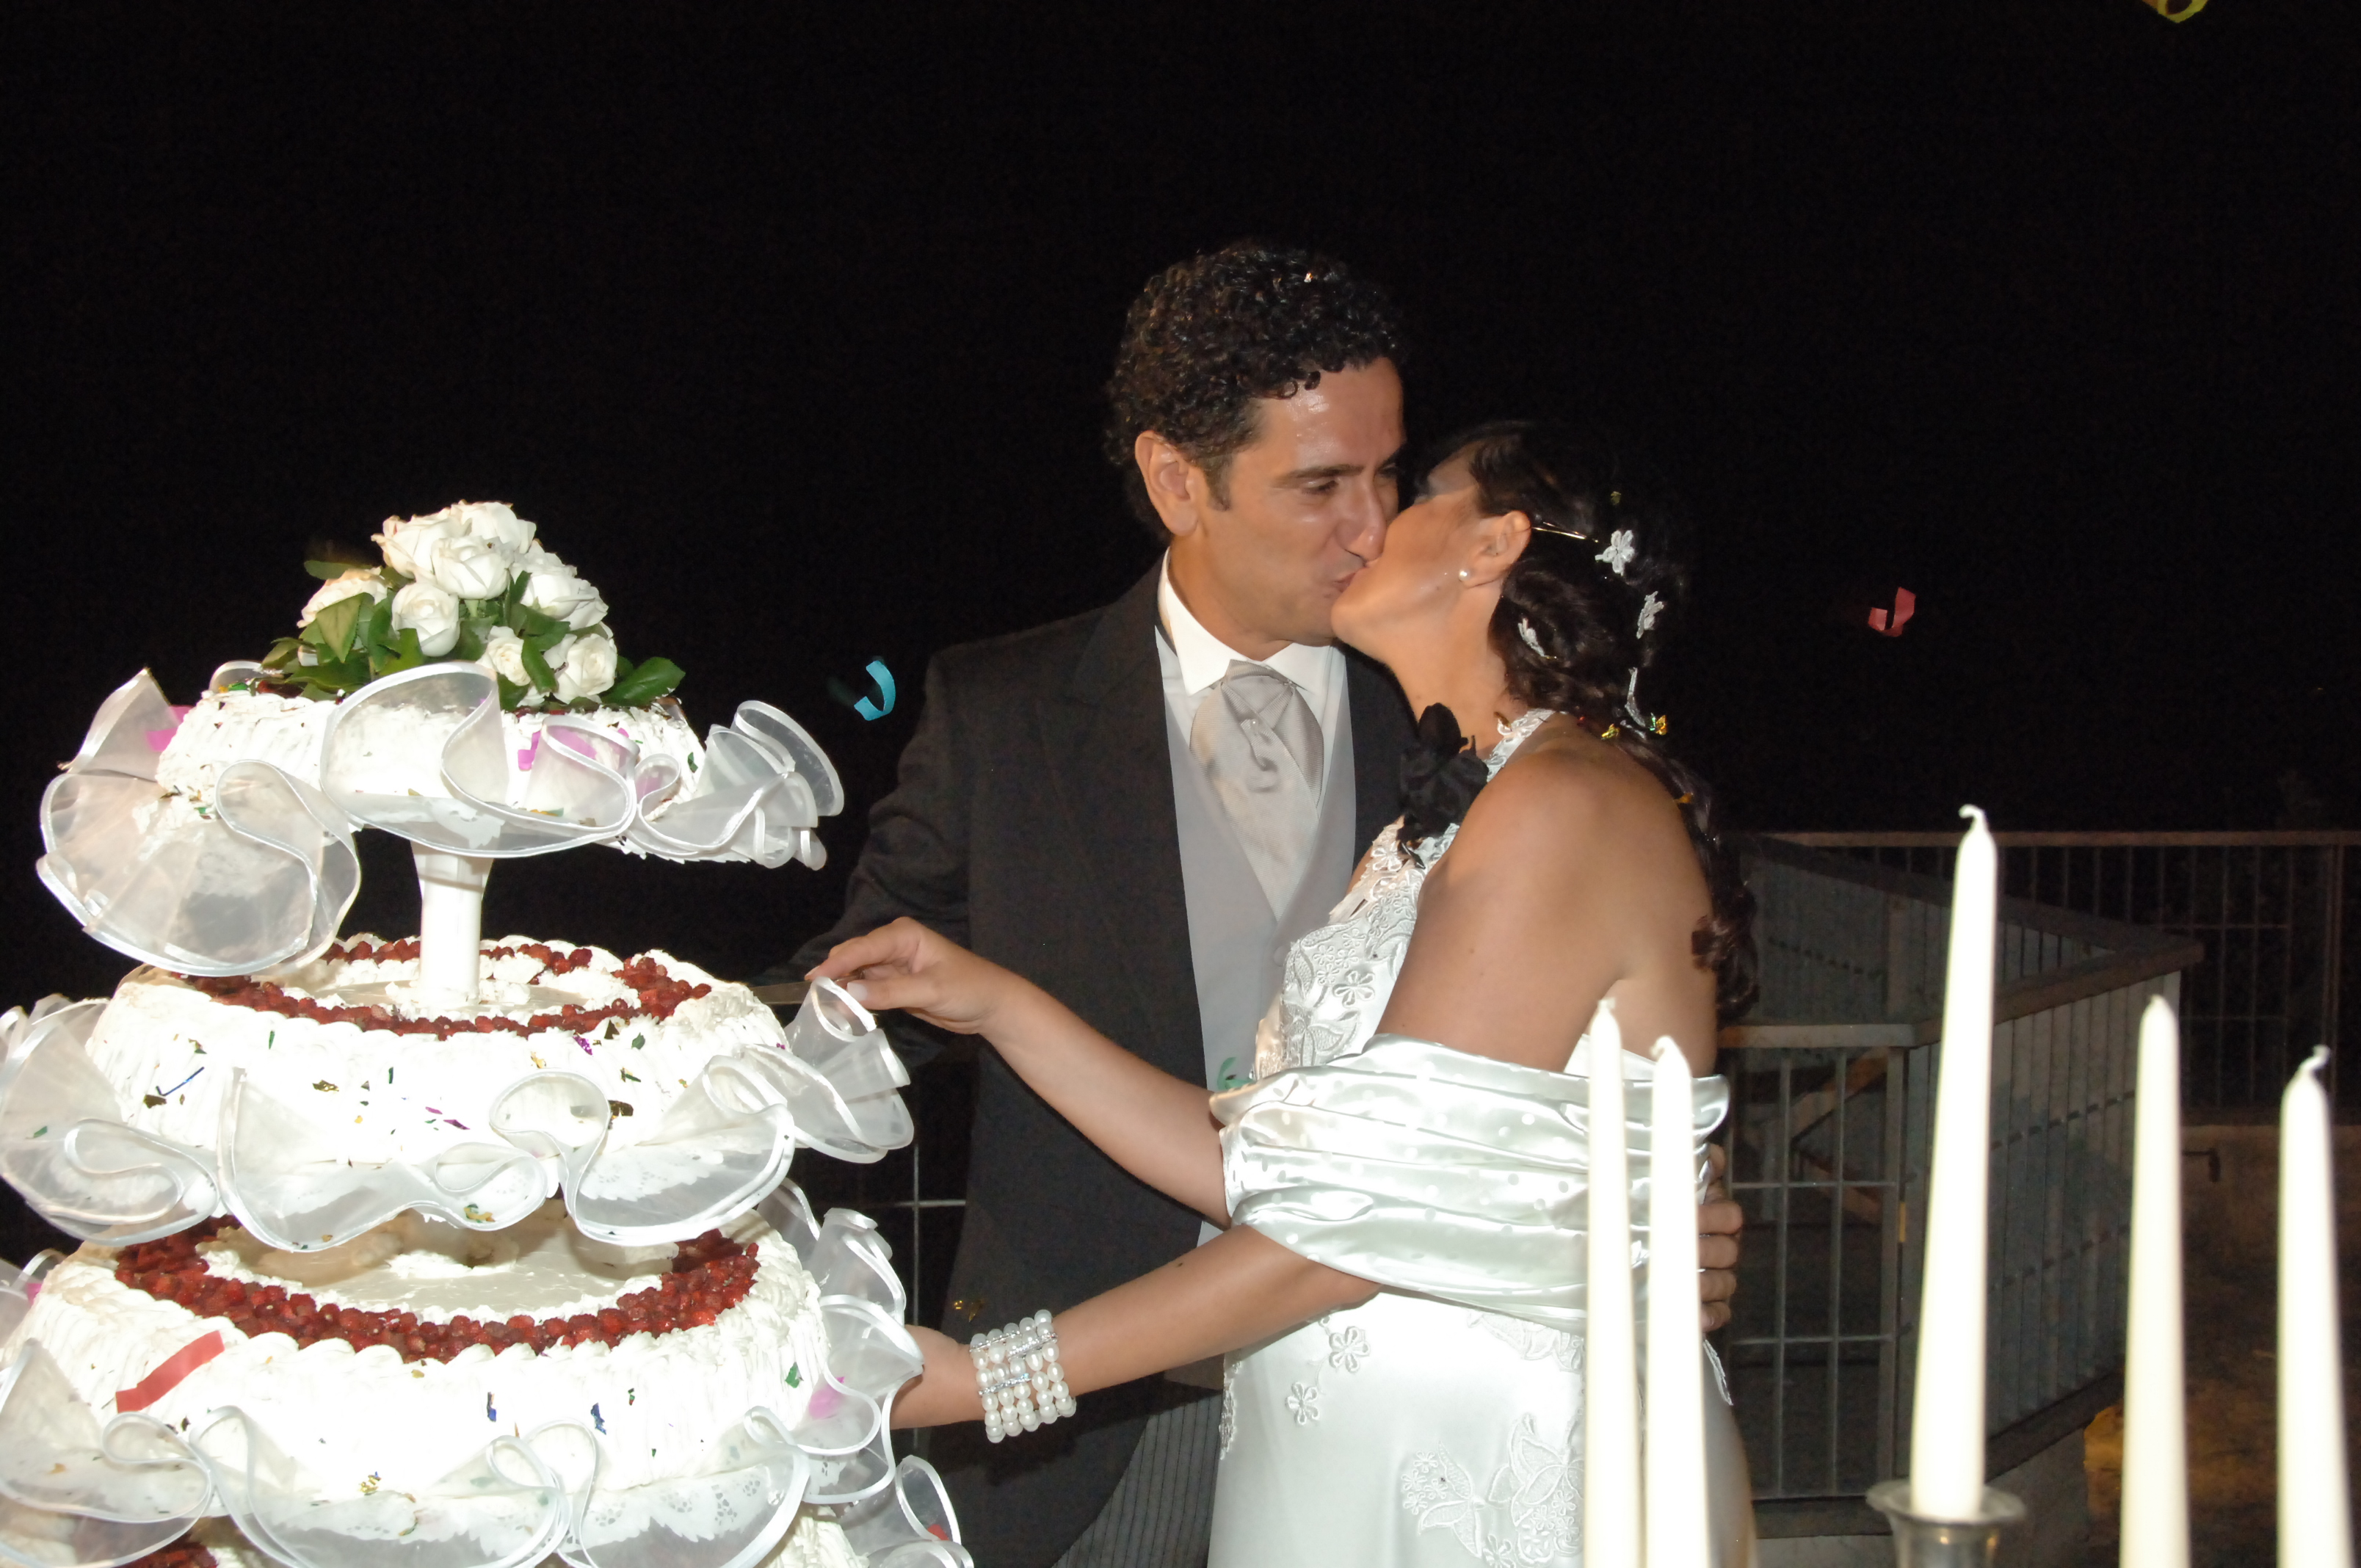 http://www.weddingamalfi.com/wp-content/uploads/Enza-and-Mario-wedding-cake.jpg